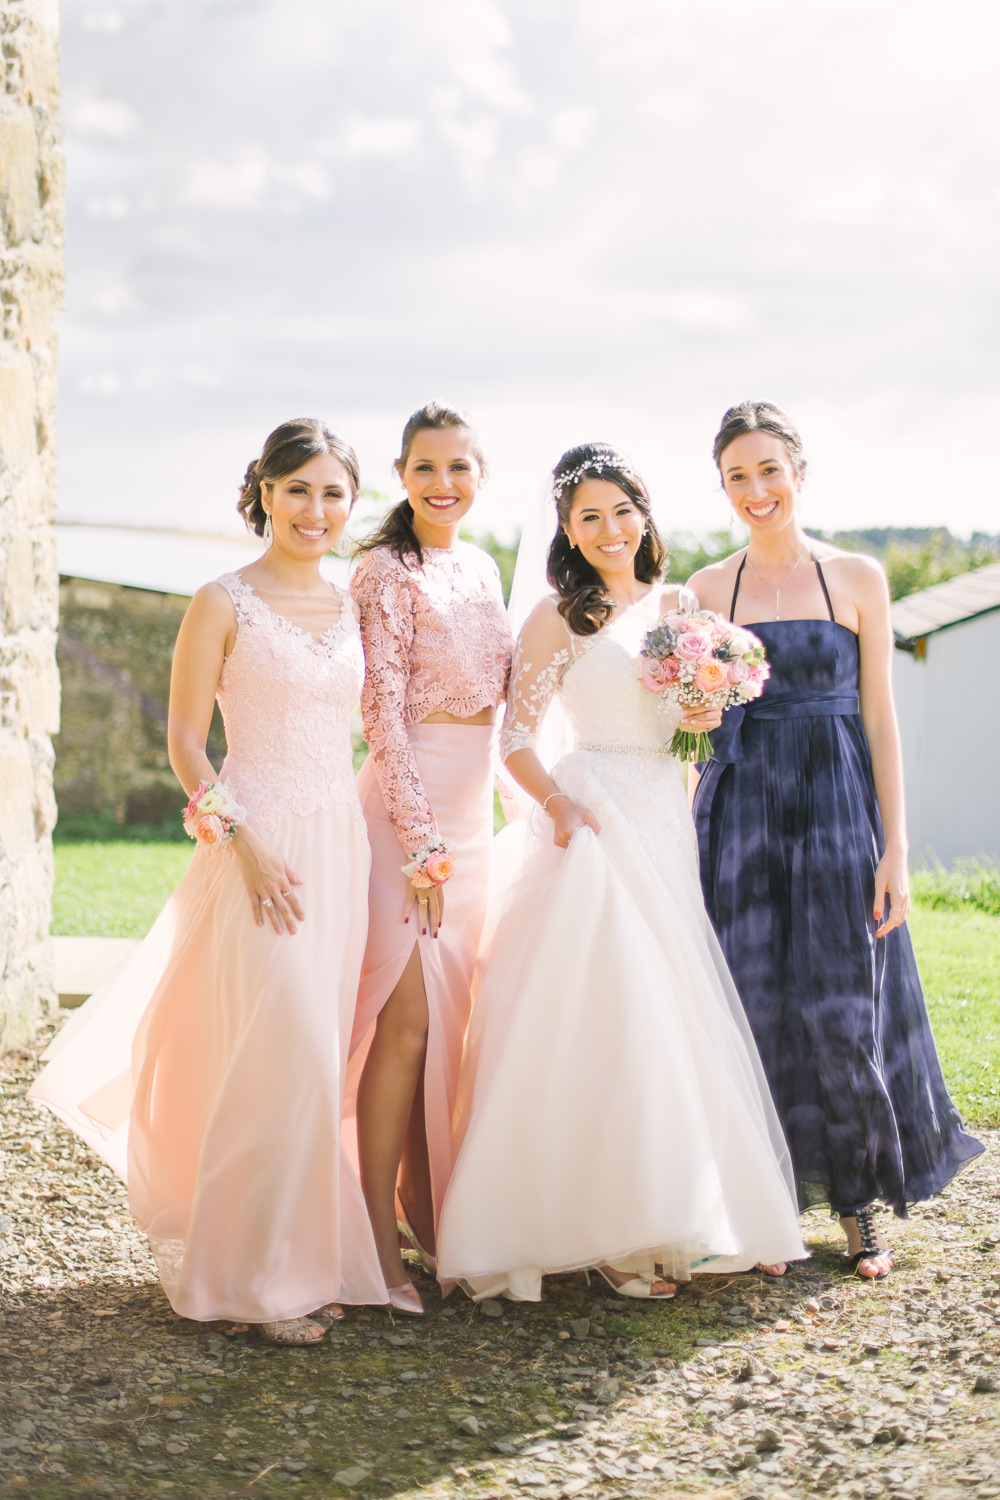 Bride Bridal V Neck Long Sleeve Embroidered Hair Vine Mismatched Bridesmaids Corsage Barn At Barra Castle Wedding Ceranna Photography